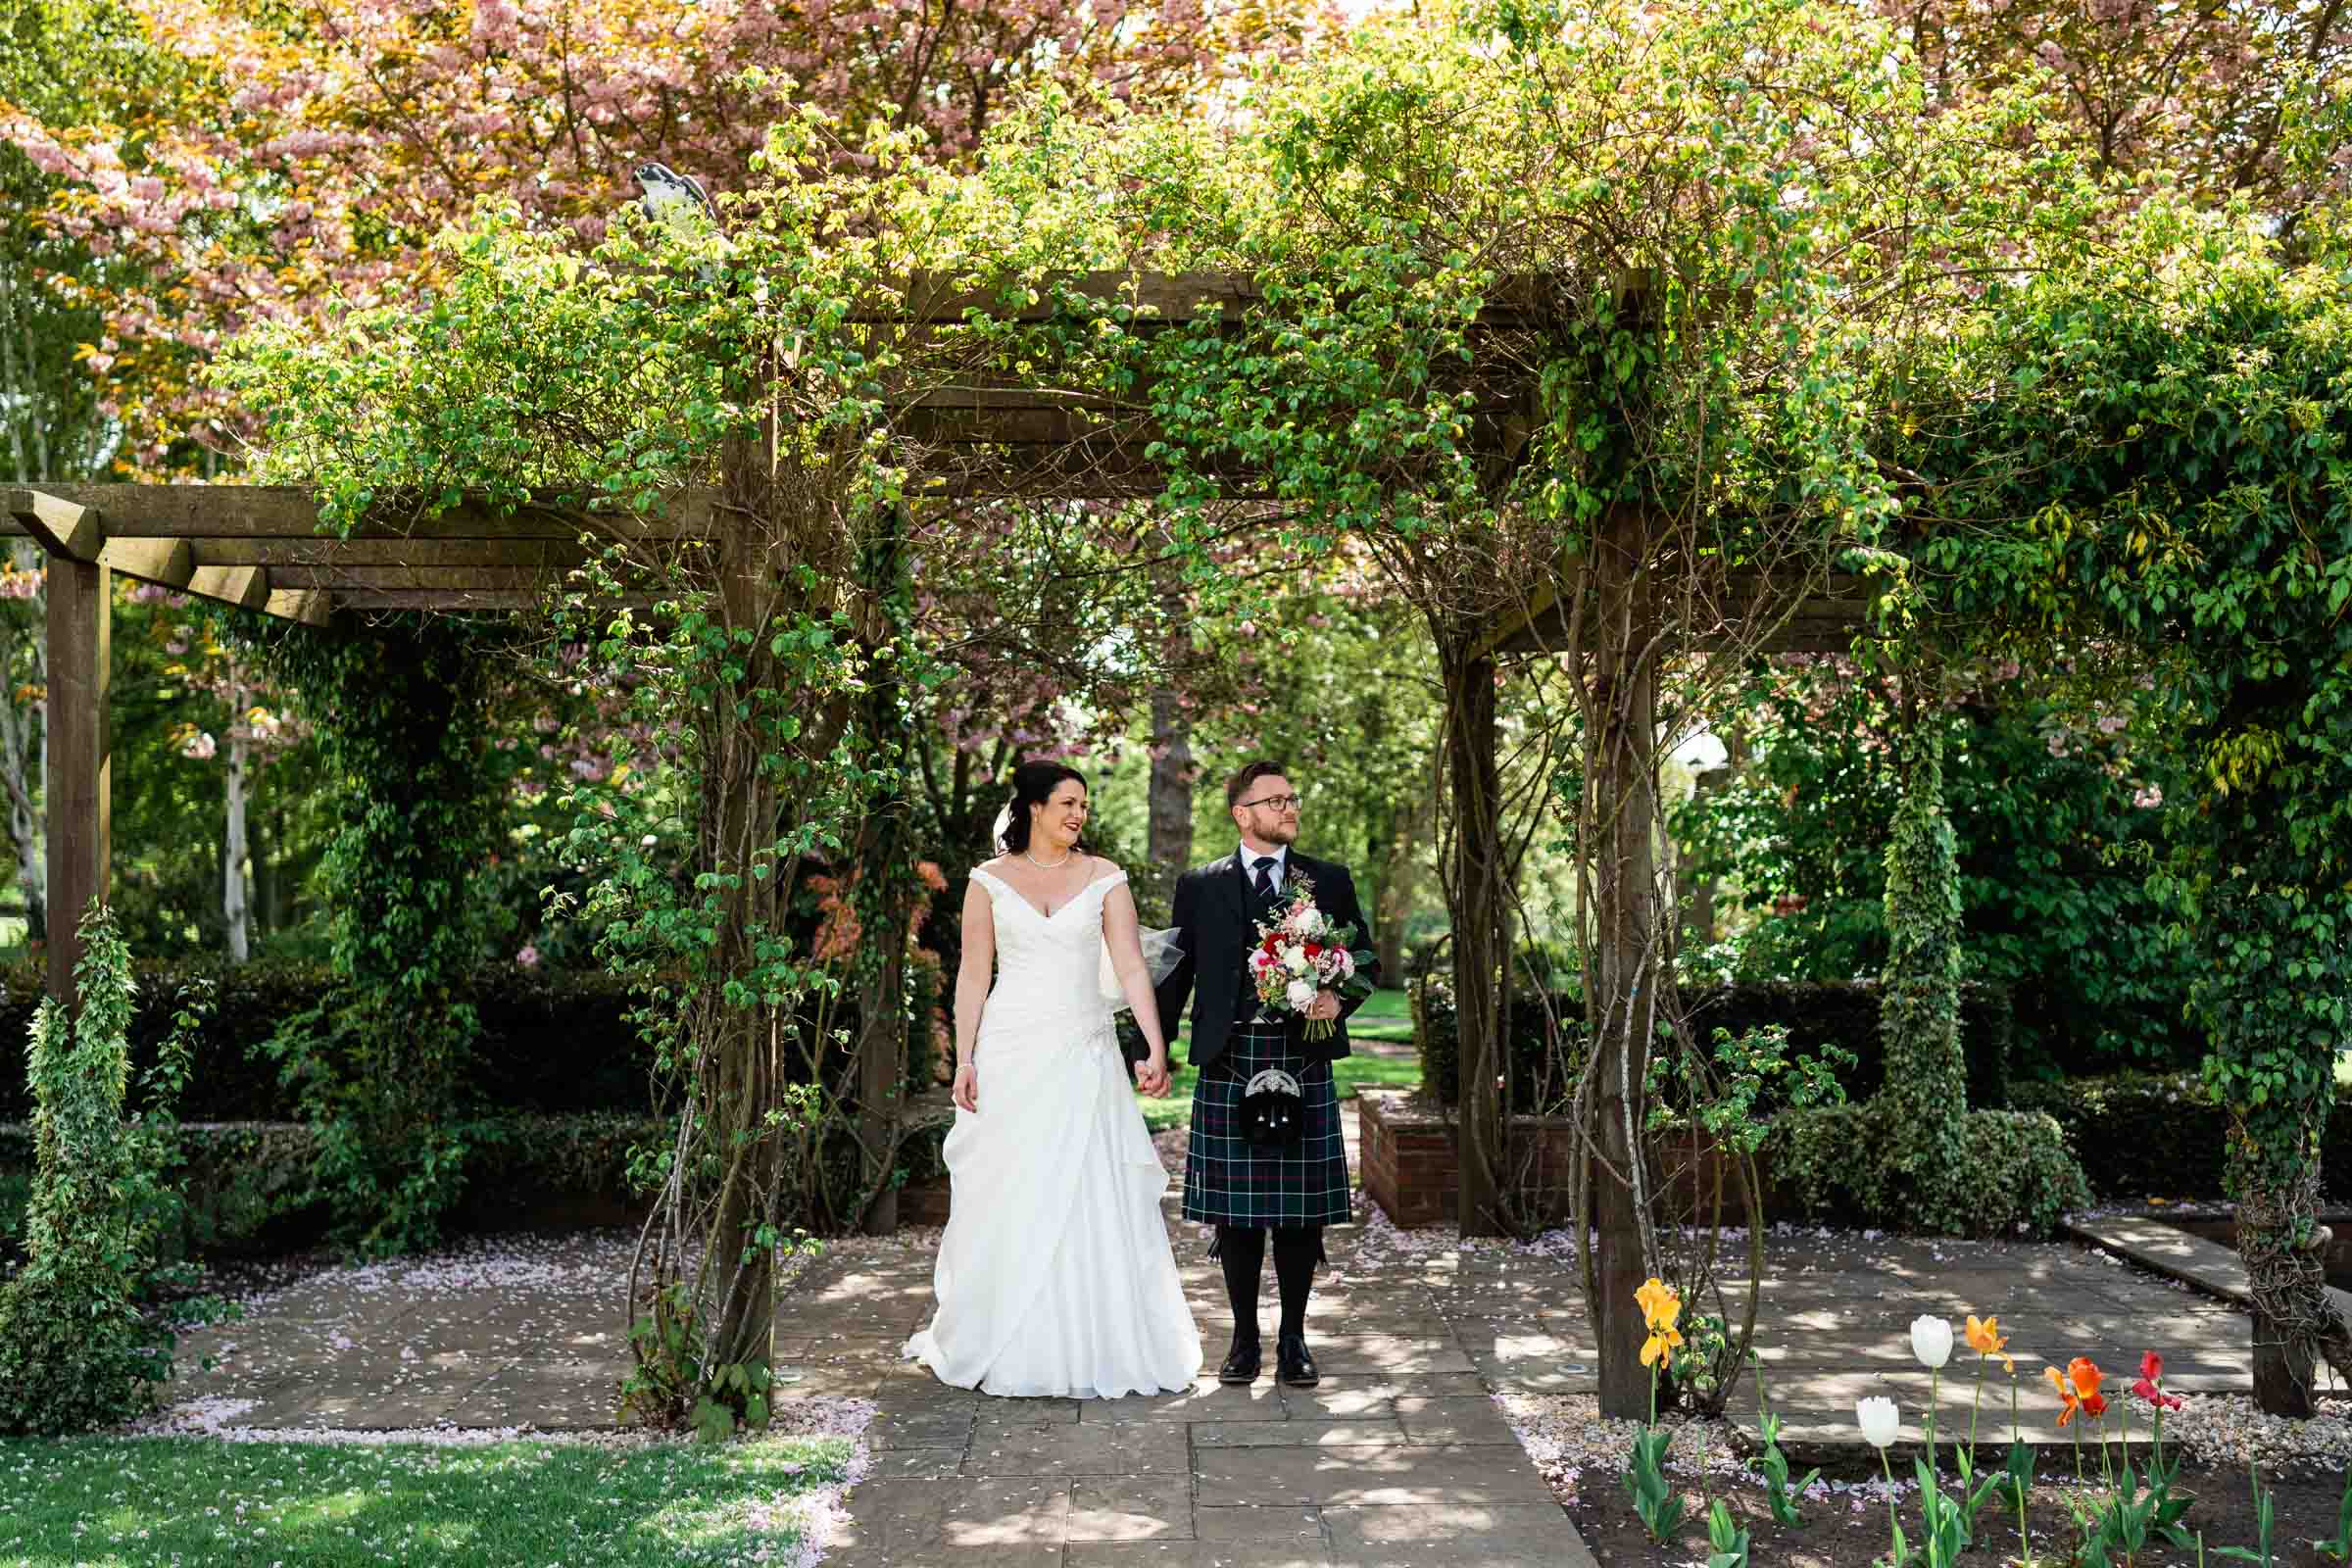 ayrshire-clairebarry-wedding-dearlyphotography (4 of 5).jpg